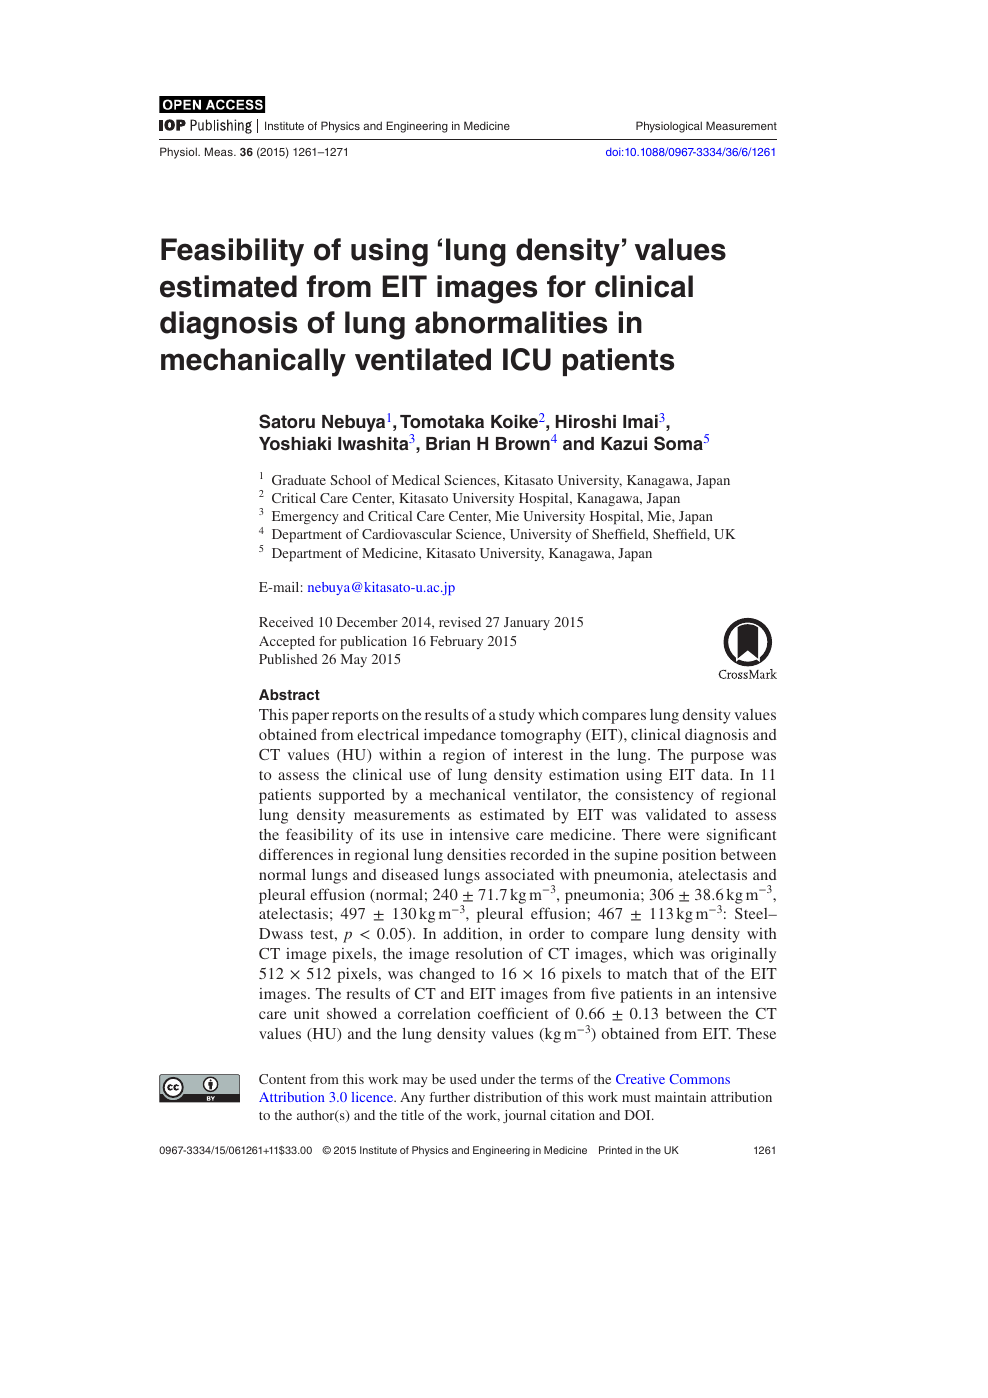 Feasibility of using 'lung density' values estimated from